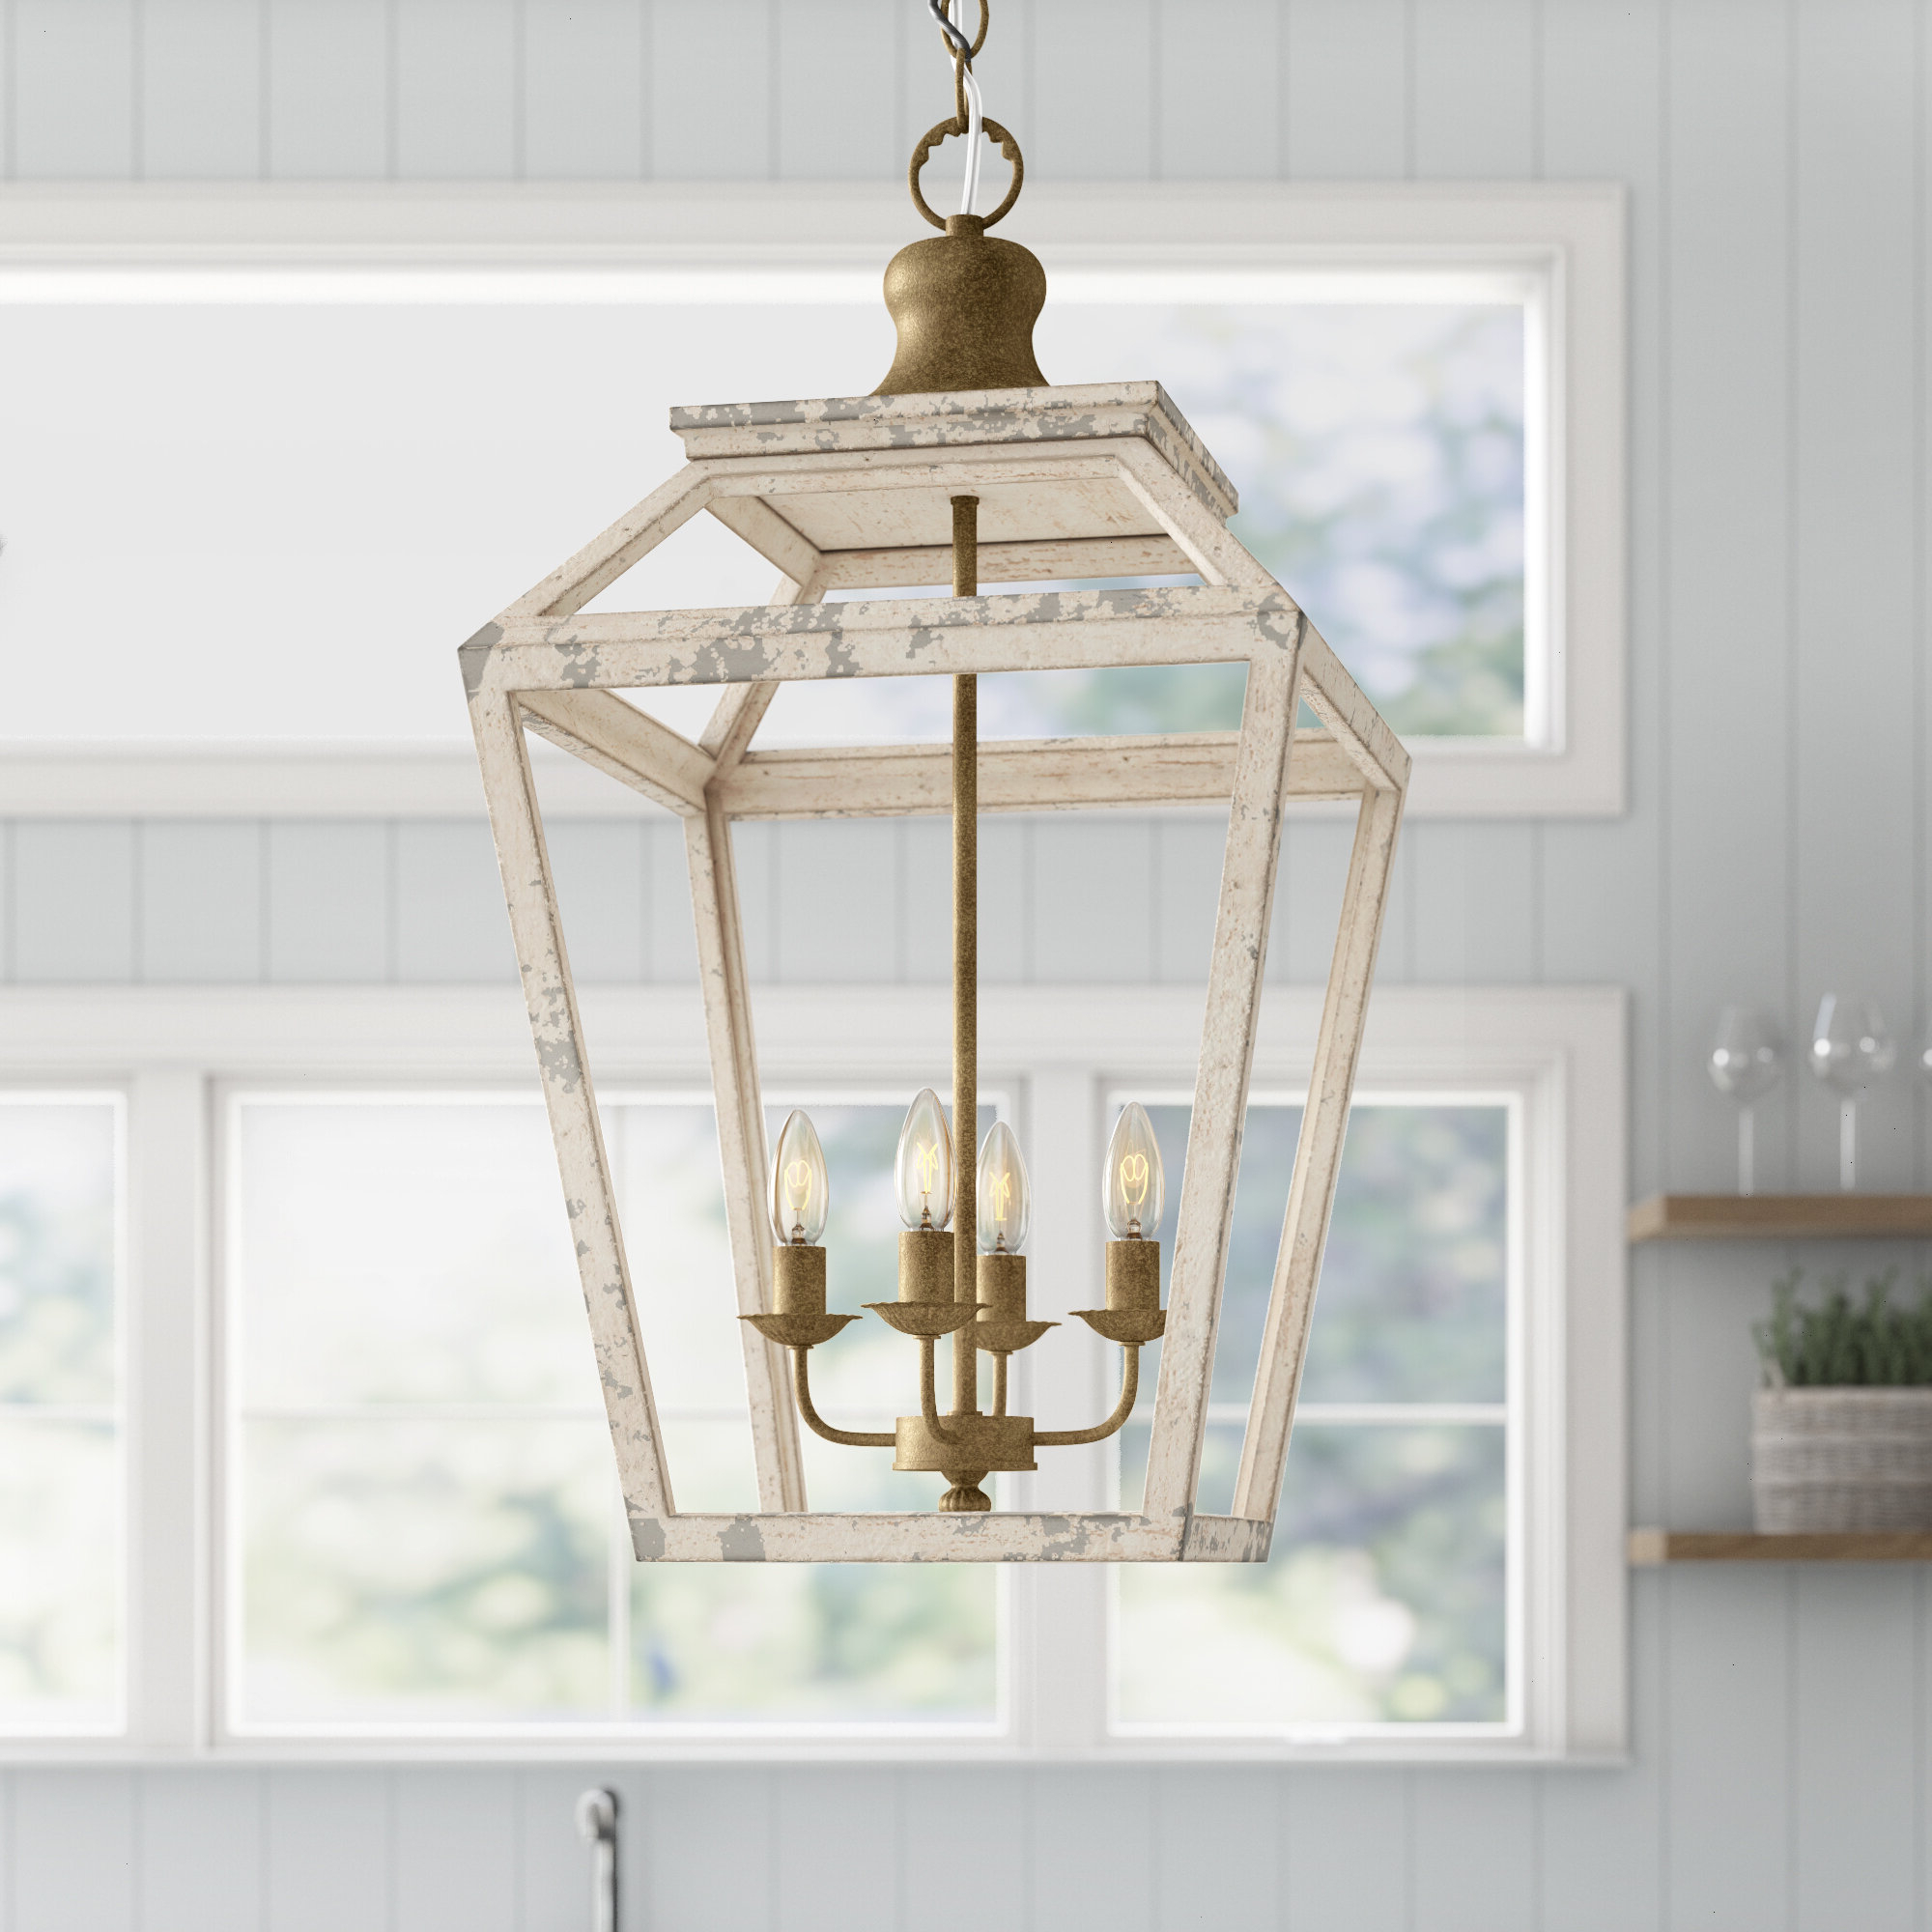 Widely Used Baugher 4 Light Lantern Geometric Pendant Intended For Carmen 4 Light Lantern Geometric Pendants (View 24 of 25)